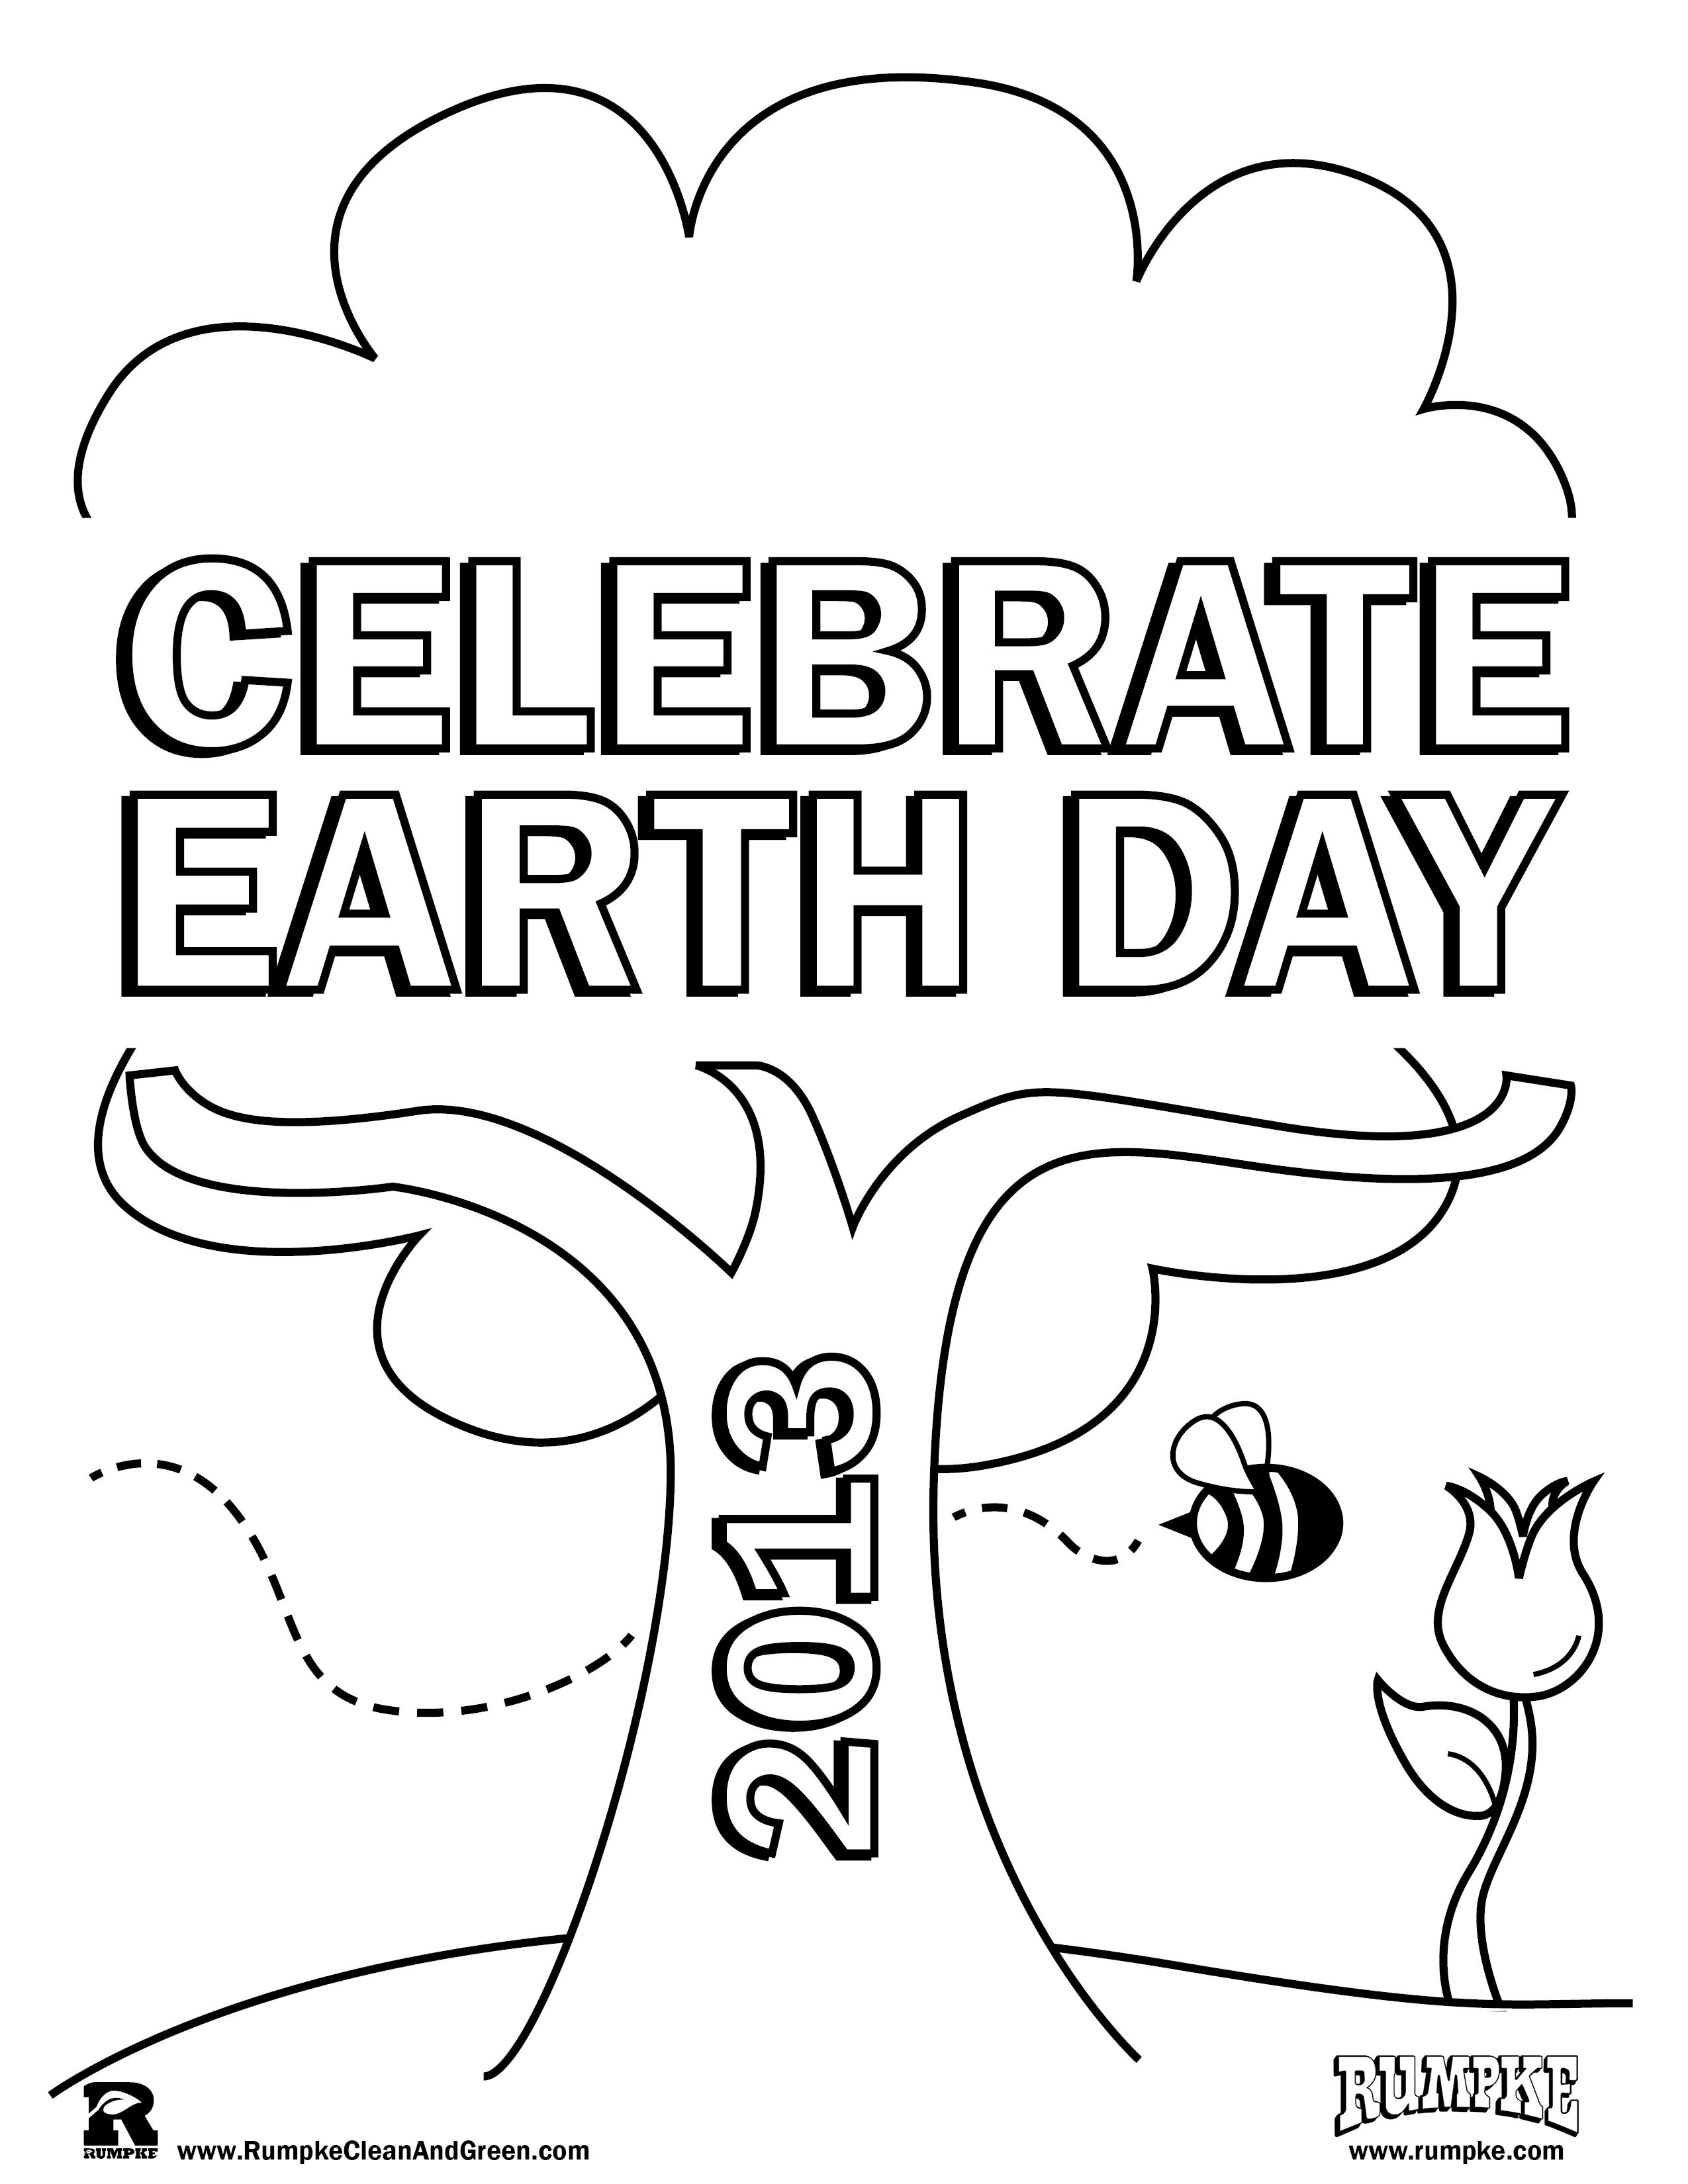 Celebrate Earth Day 2013! Free printable coloring sheet #